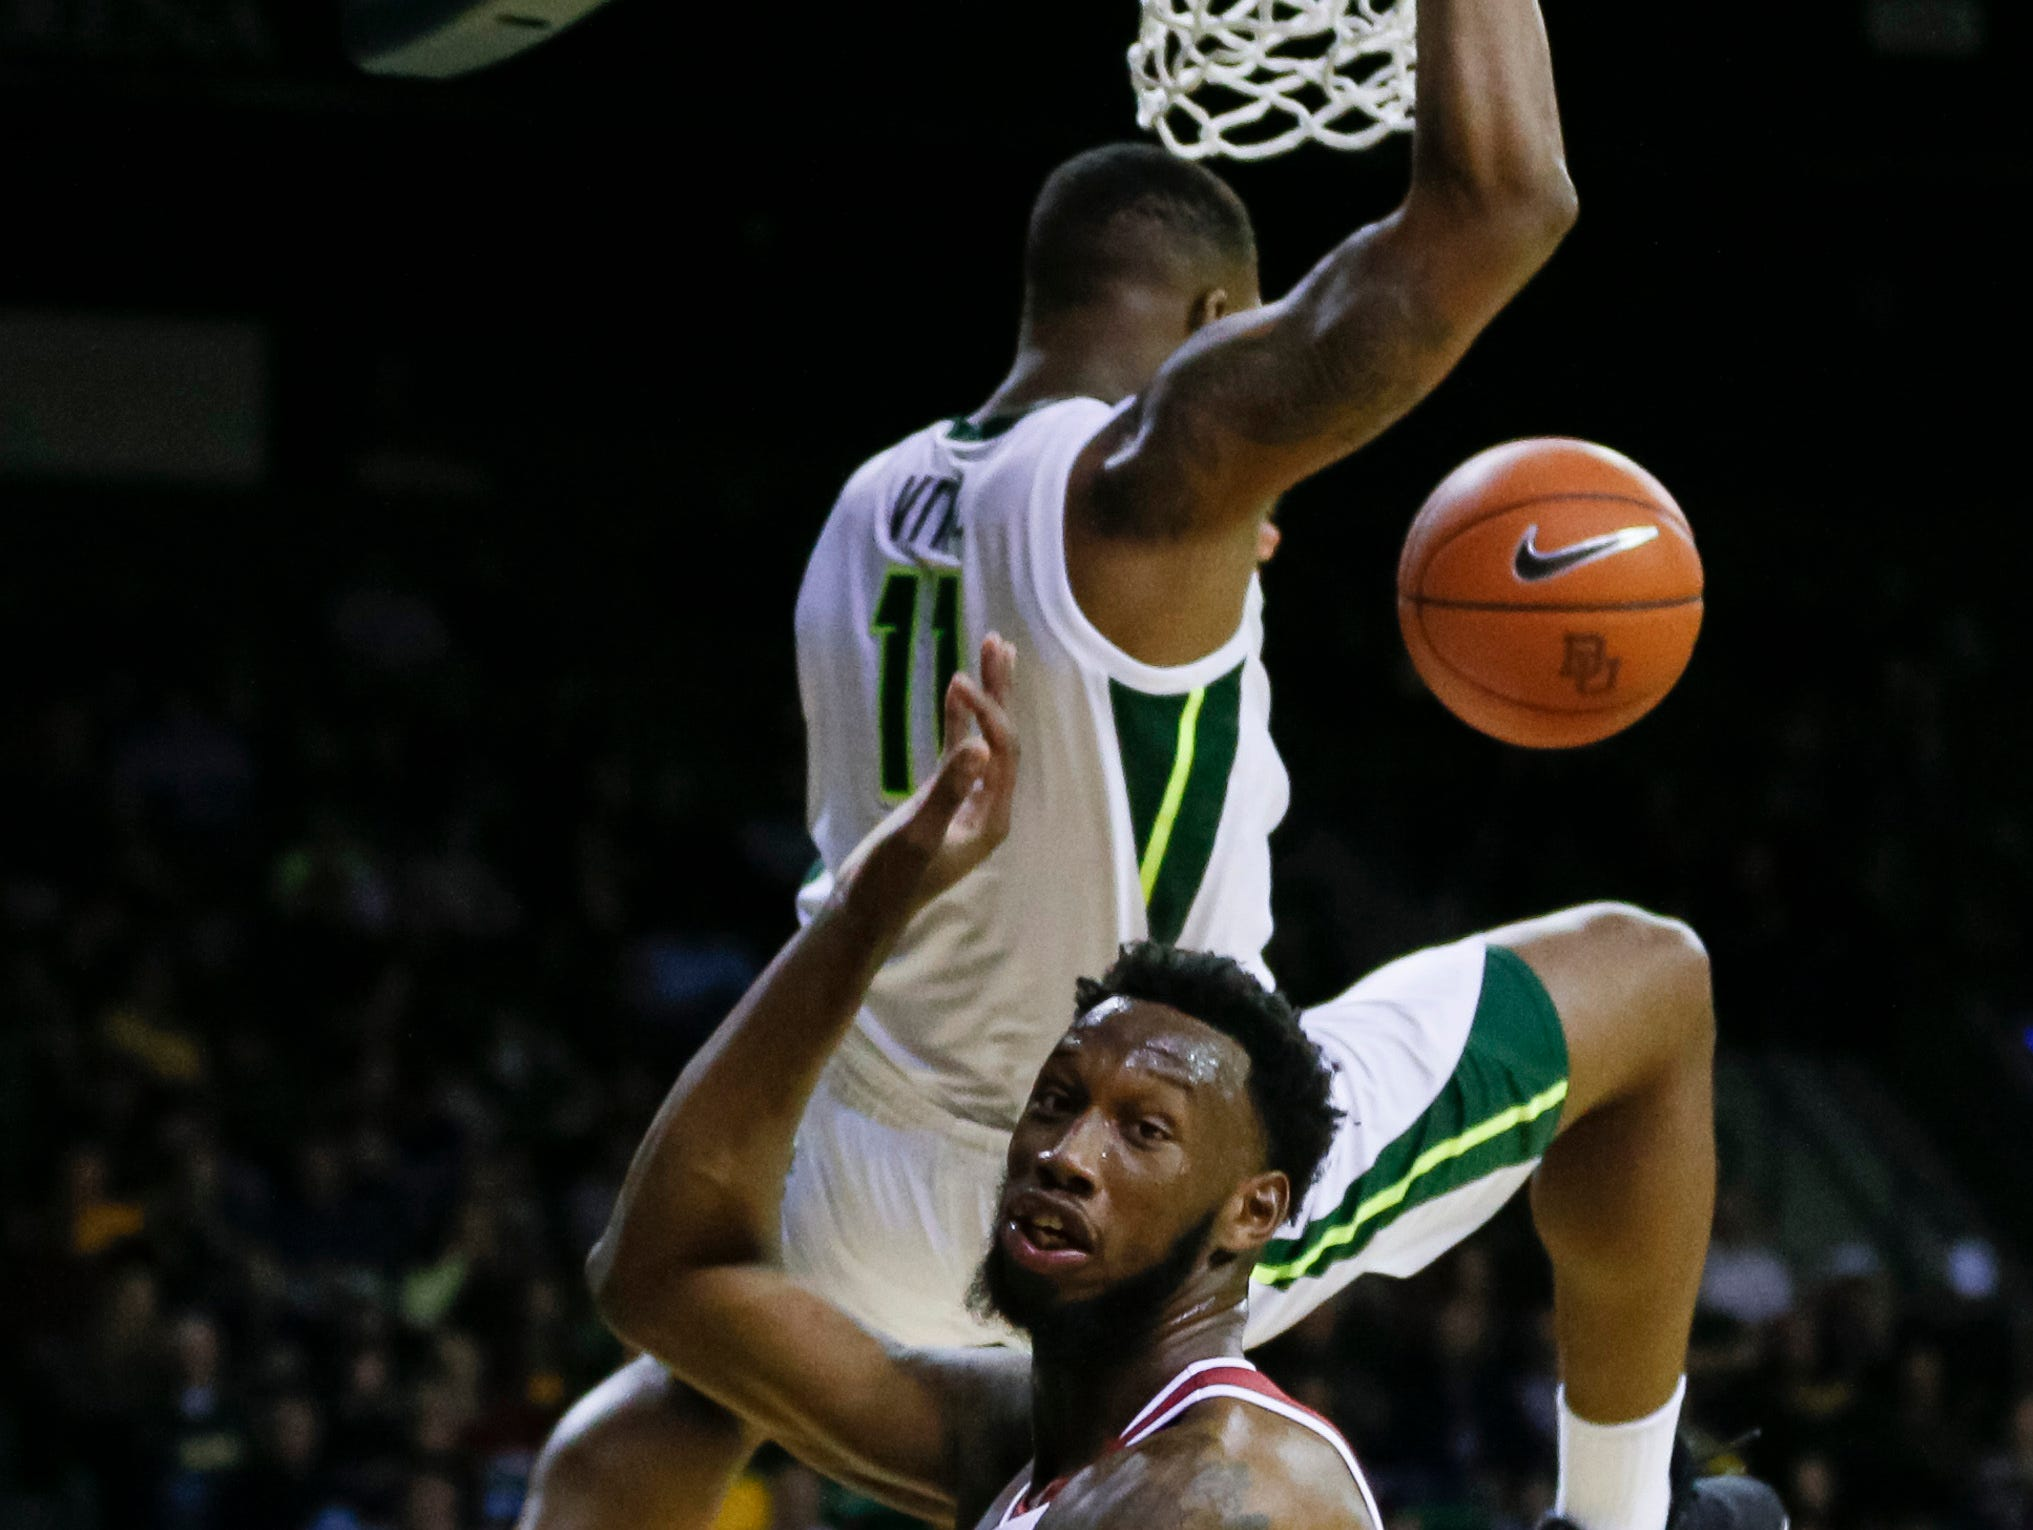 Jan 26, 2019; Waco, TX, USA; Baylor Bears guard Mark Vital (11) dunks over Alabama Crimson Tide forward Donta Hall (0) during the second half at Ferrell Center. Mandatory Credit: Ray Carlin-USA TODAY Sports